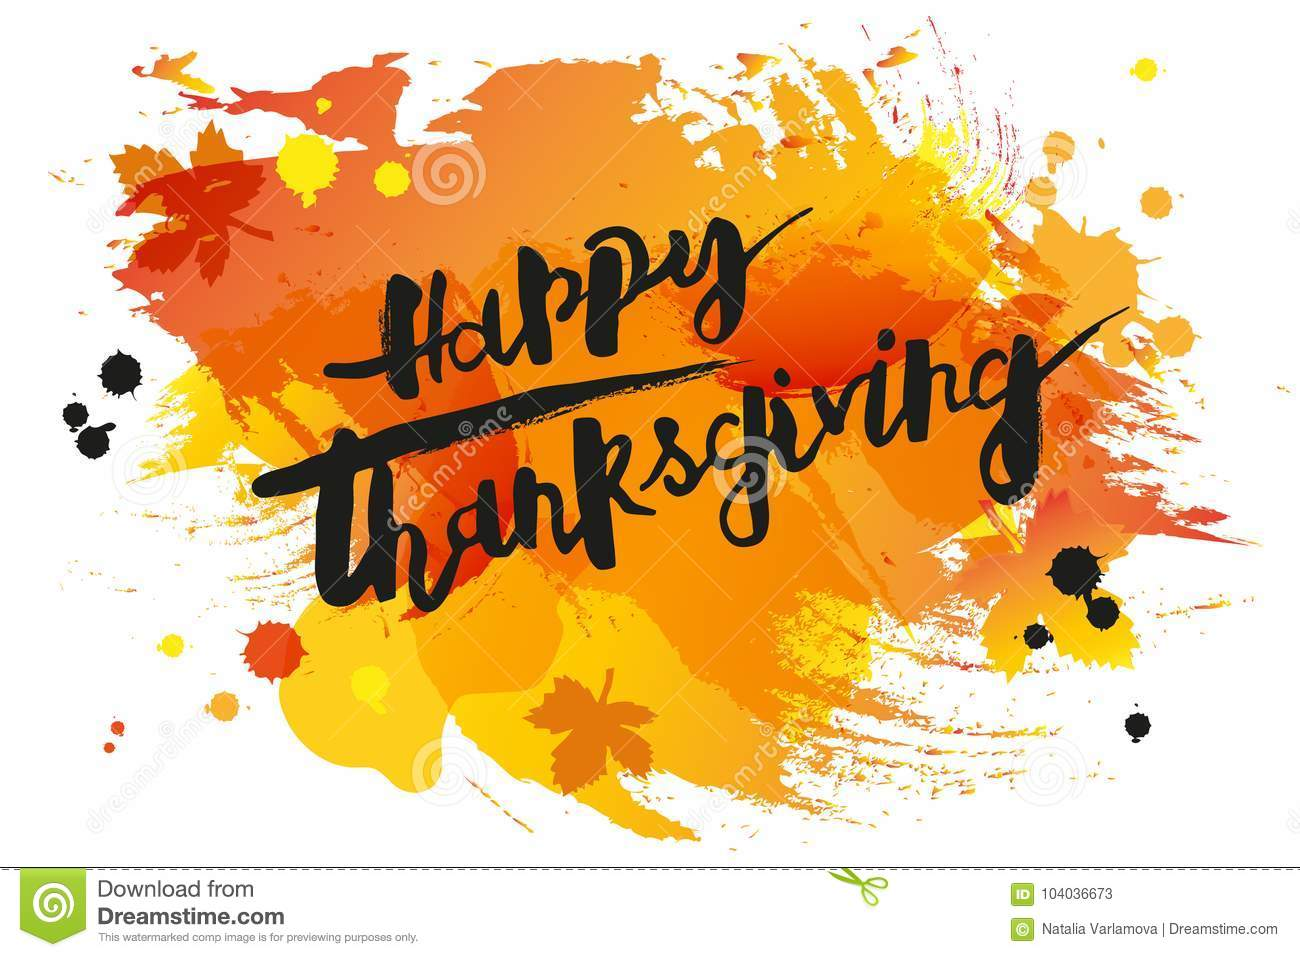 Download Handwritten Modern Lettering Happy Thanksgiving On Watercolor Imitation Background Stock Vector